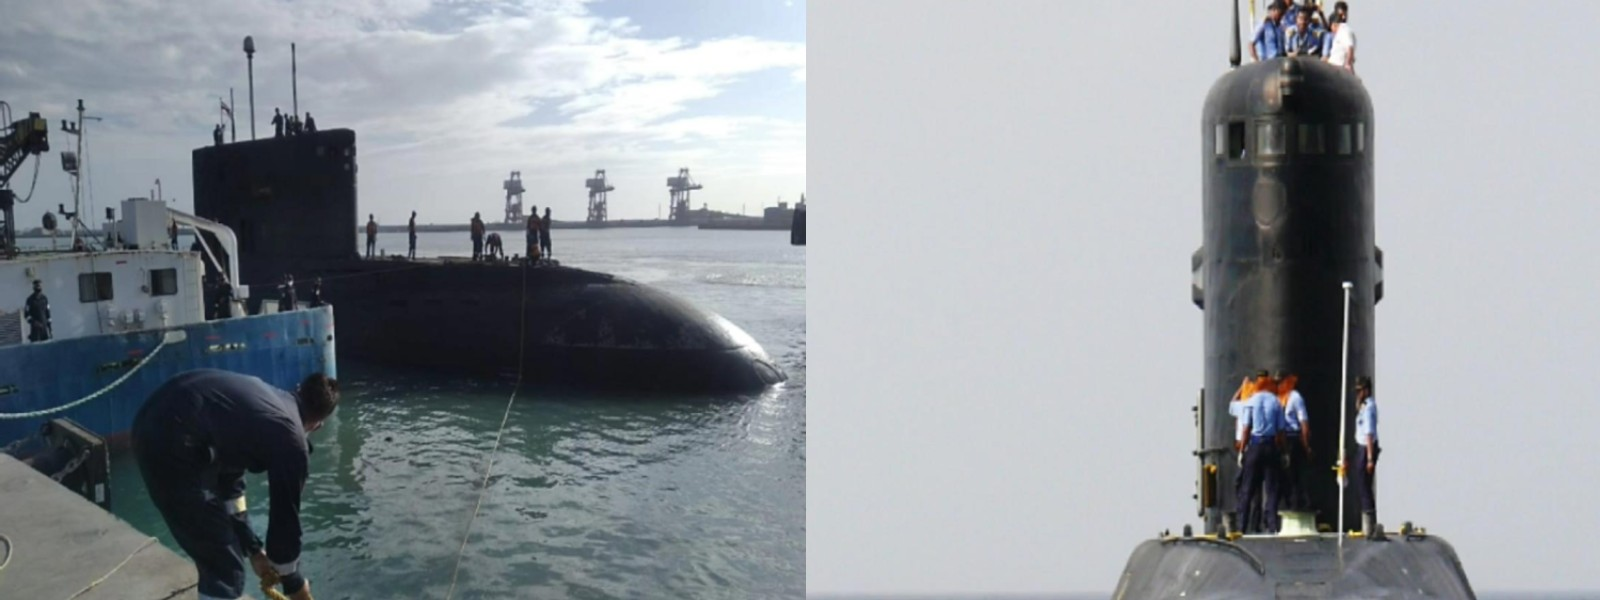 Indian Navy submarine docks in TN as Chinese presence grows in the region